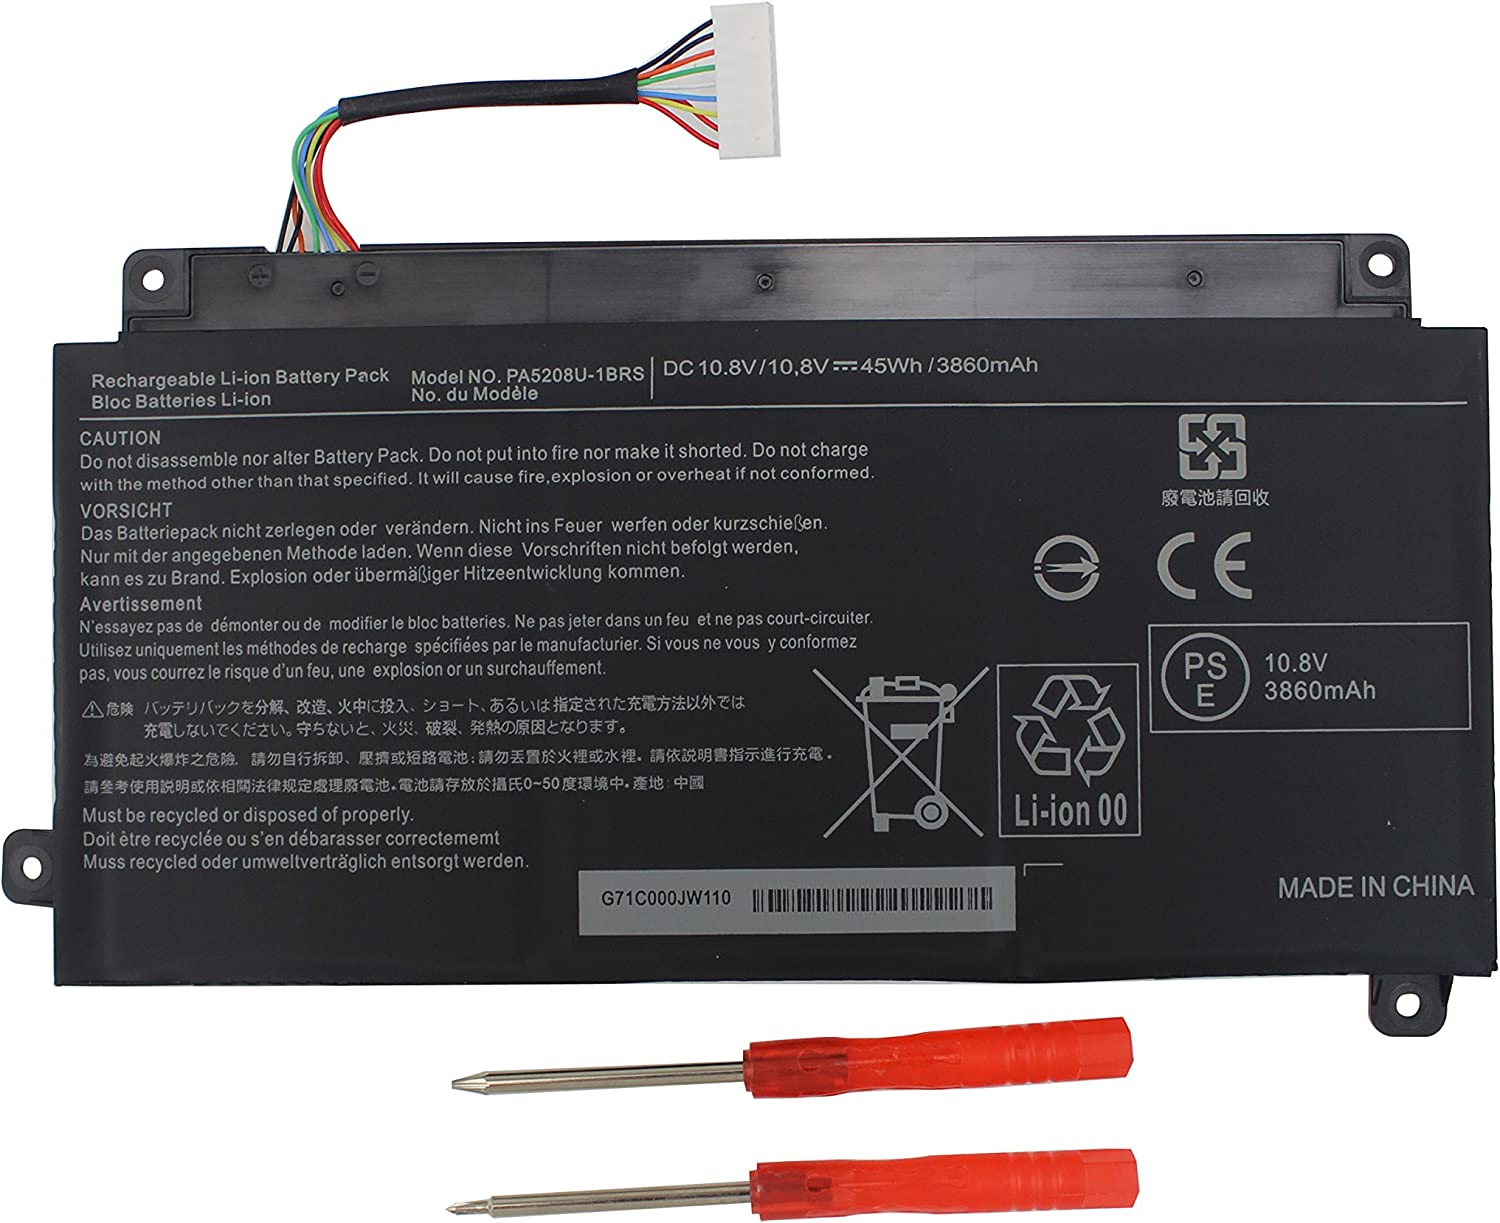 Gomarty New PA5208U-1BRS Battery for Toshiba Satellite E45W P55W E45w-C4200x P55w-c5204 P55w-c5208;Chromebook CB30 CB35 CB35-B3330 CB35-B3340 CB35-C3300 CB35-C3350 CB30-B3123 P000619700 P000645710